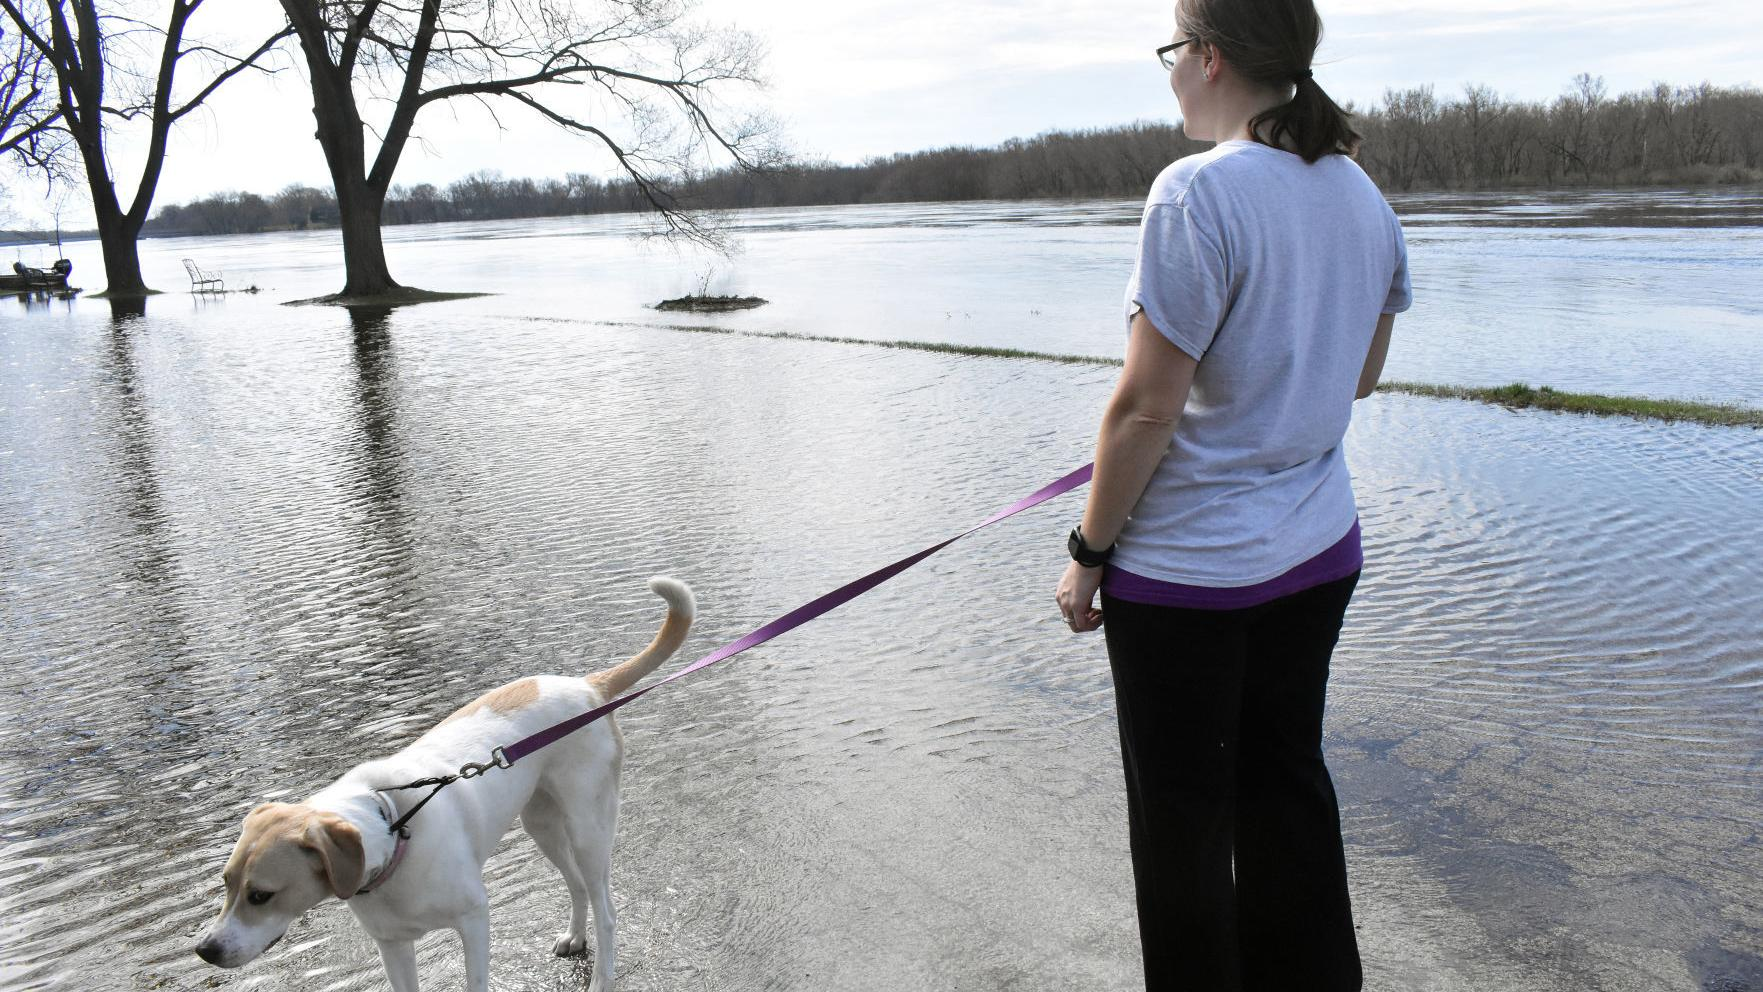 Wisconsin River floodwater begins to recede as residents survey damage in Columbia, Sauk counties